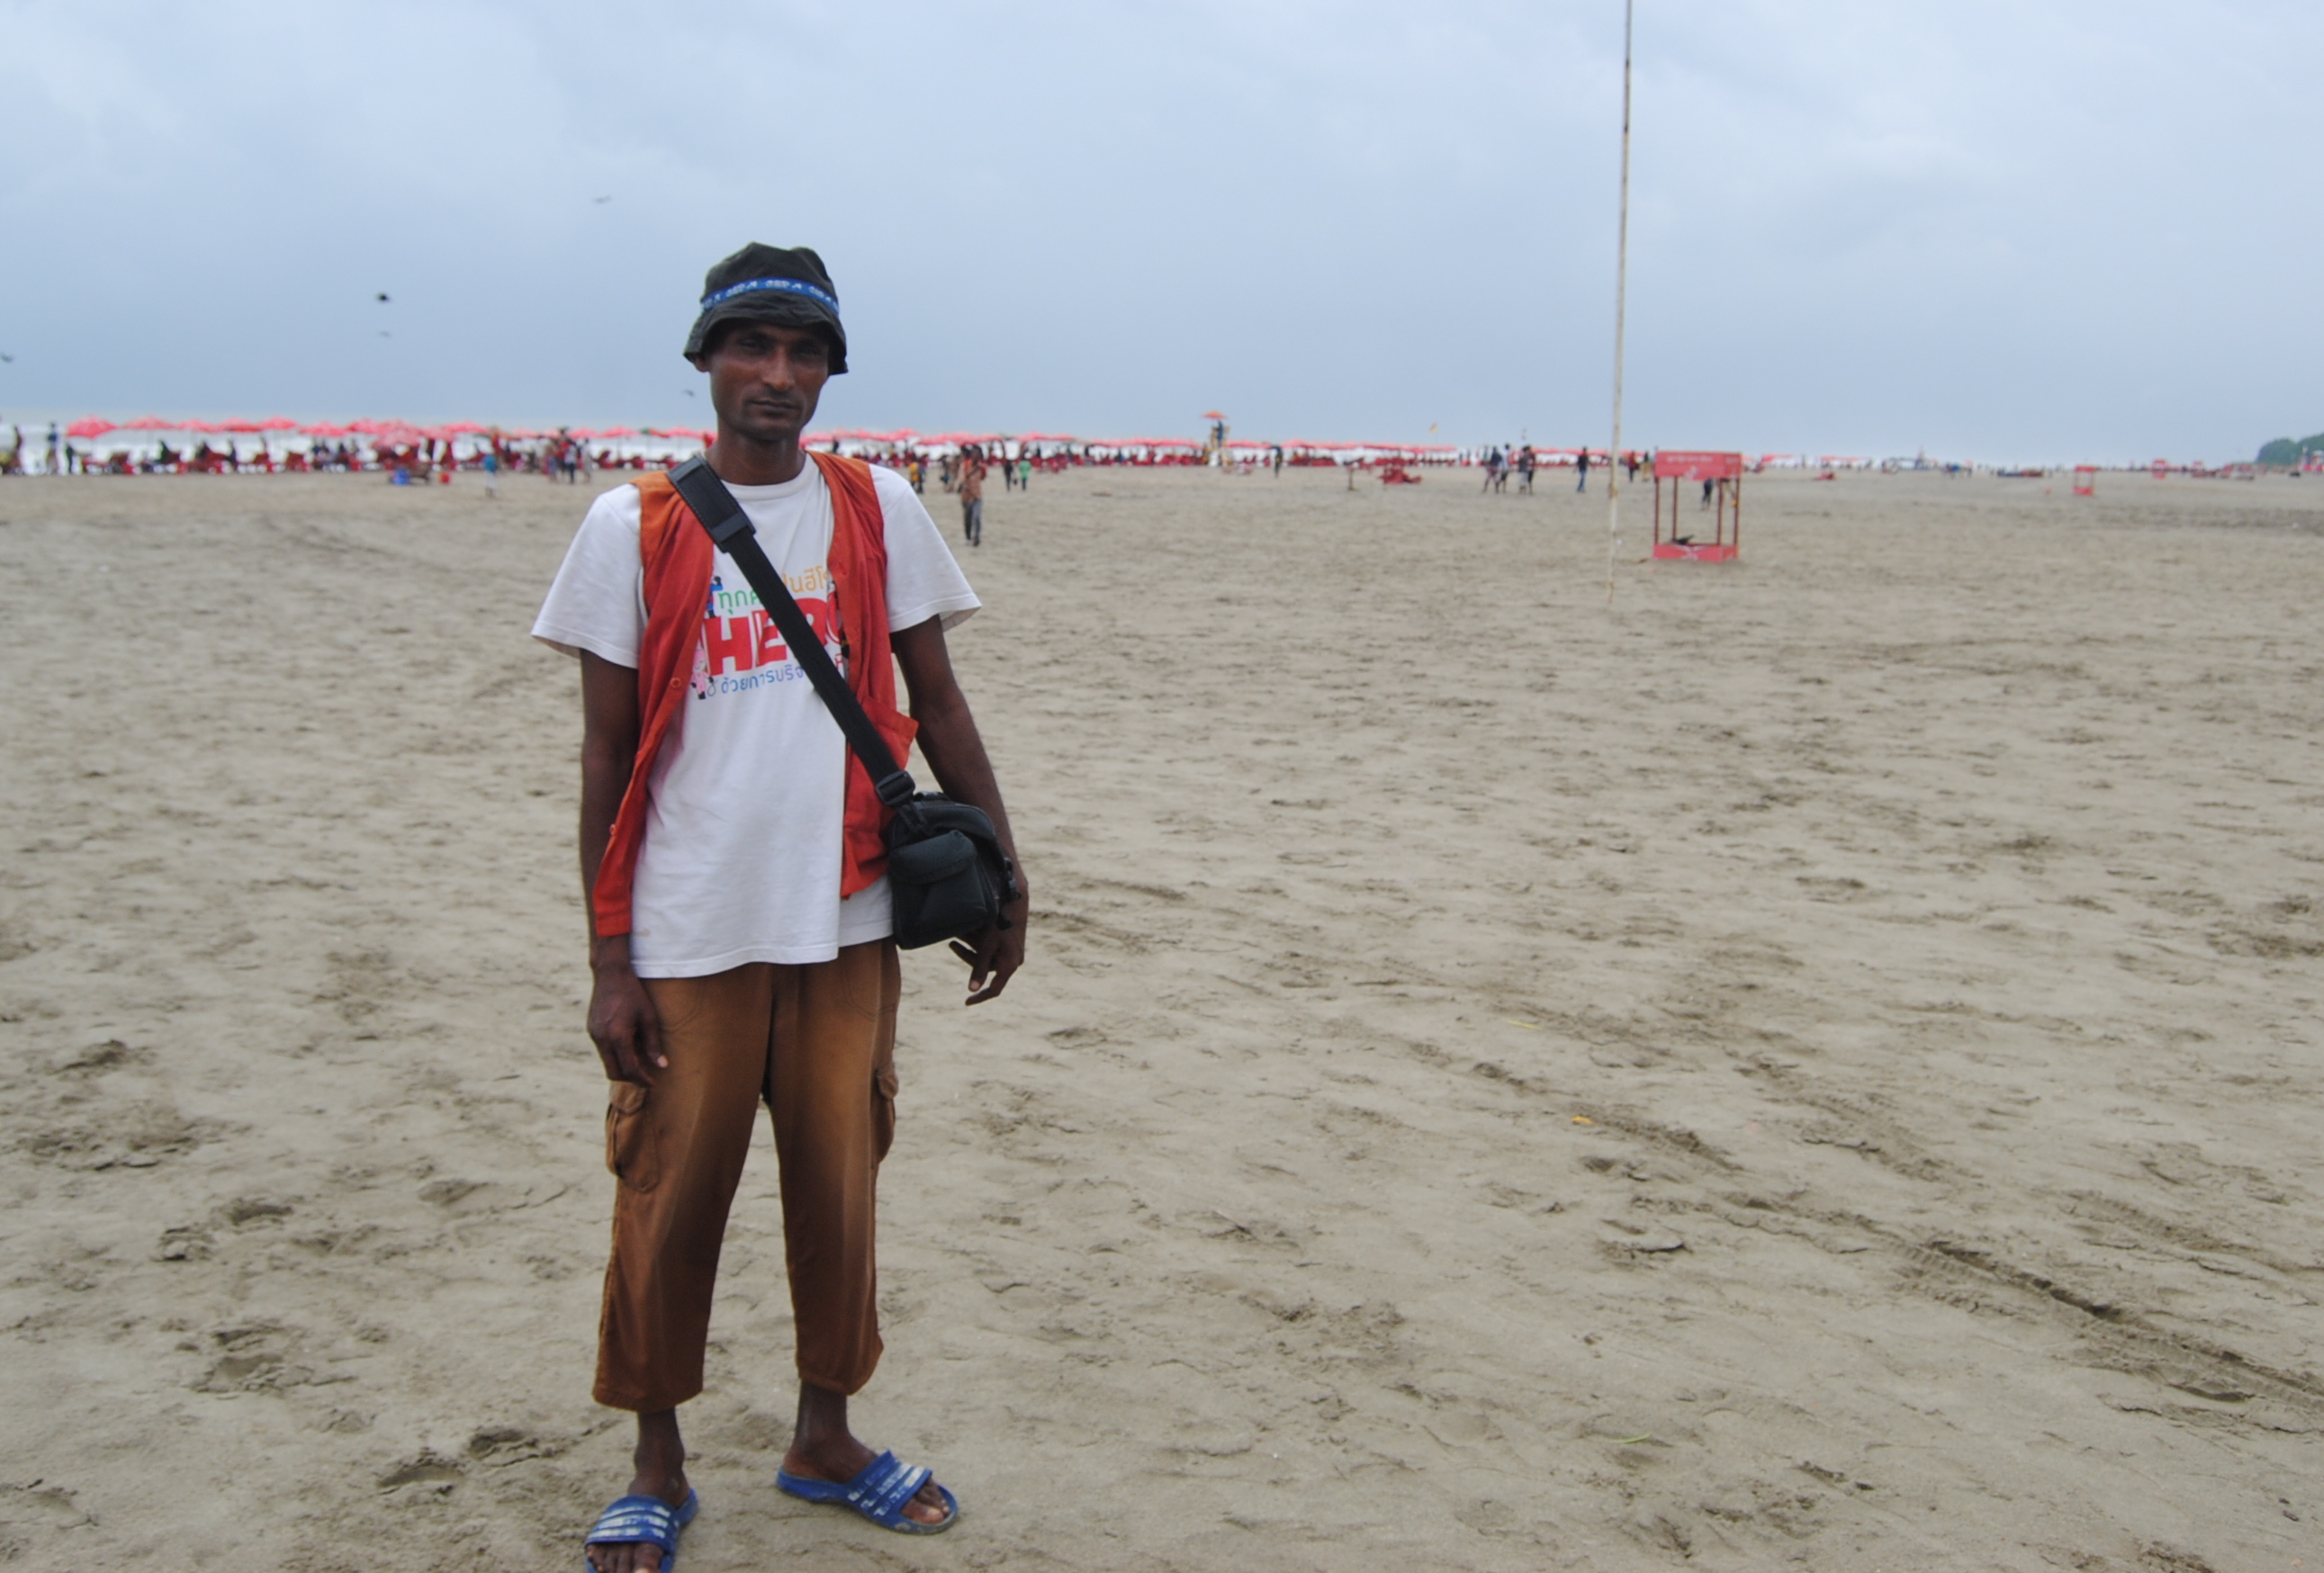 Mohammad Nurannabi, a victim of human trafficking, is back to work as a beach photographer in Cox's Bazar, Bangladesh